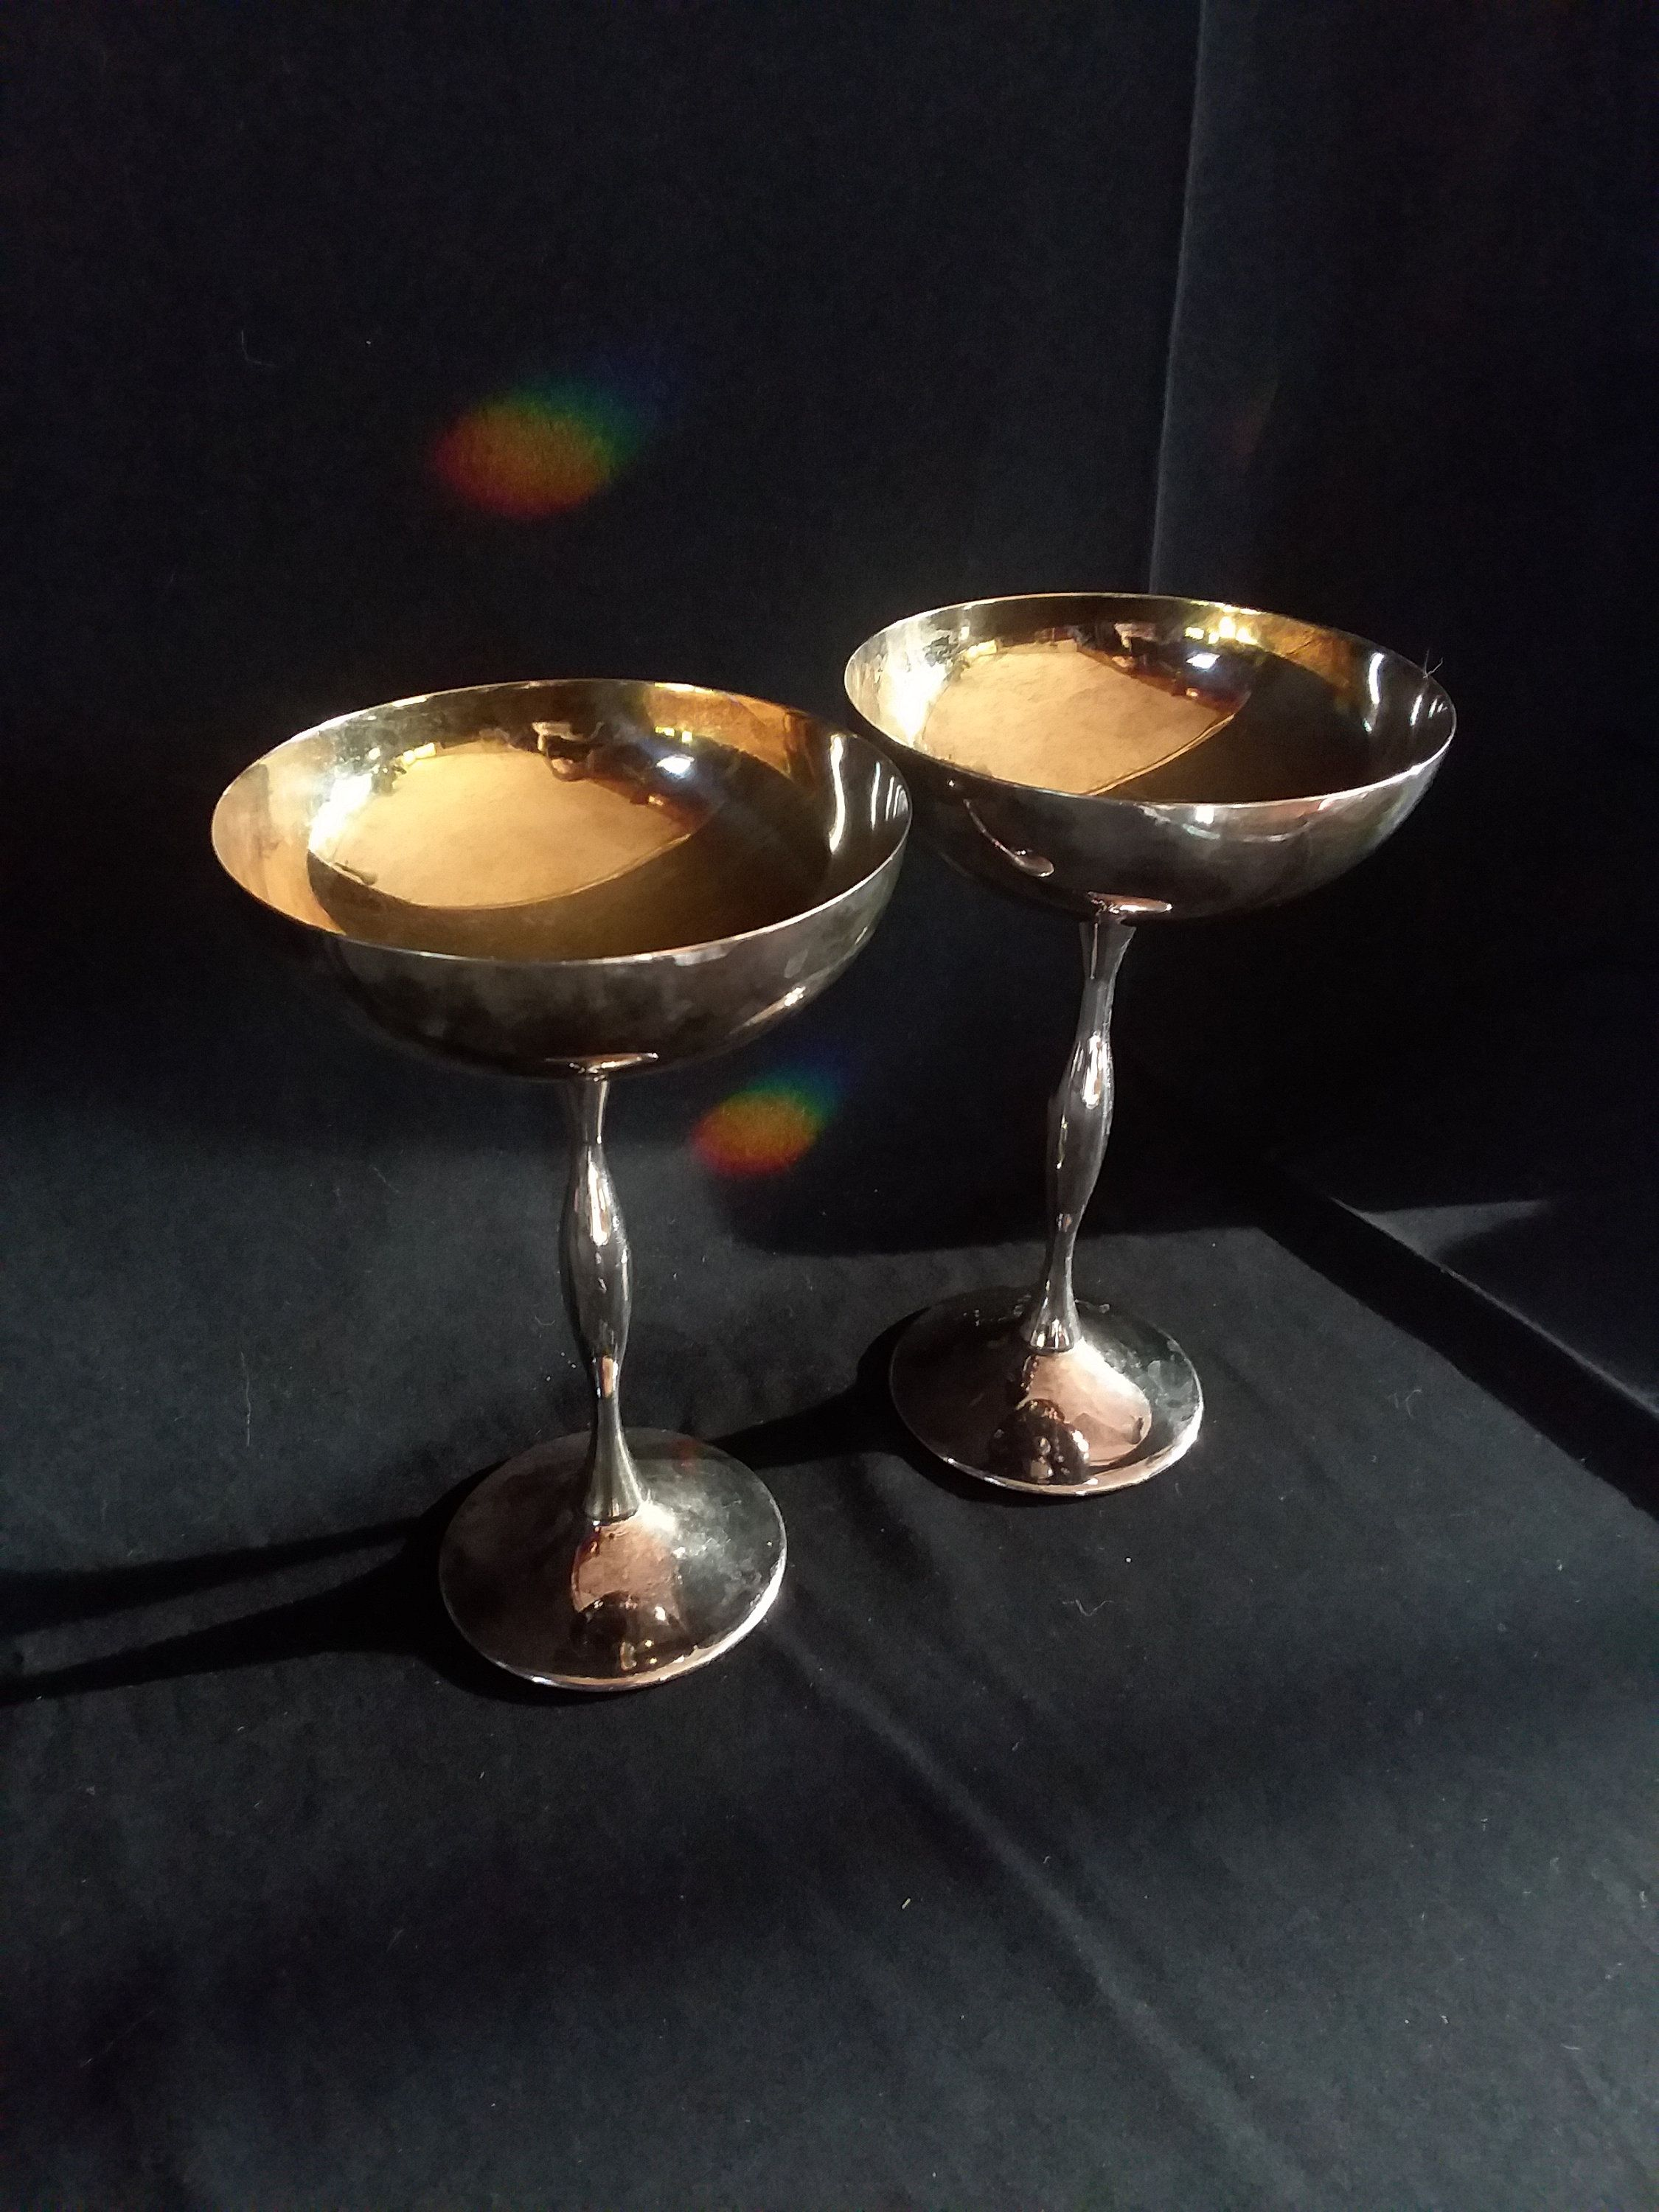 Italian Silver Plate, Champagne Coupes, Vintage Goblets, Wiccan Altar, Wiccan Decor, Wine Glasses, Wine Goblets, Champagne glass, Antique #wiccandecor